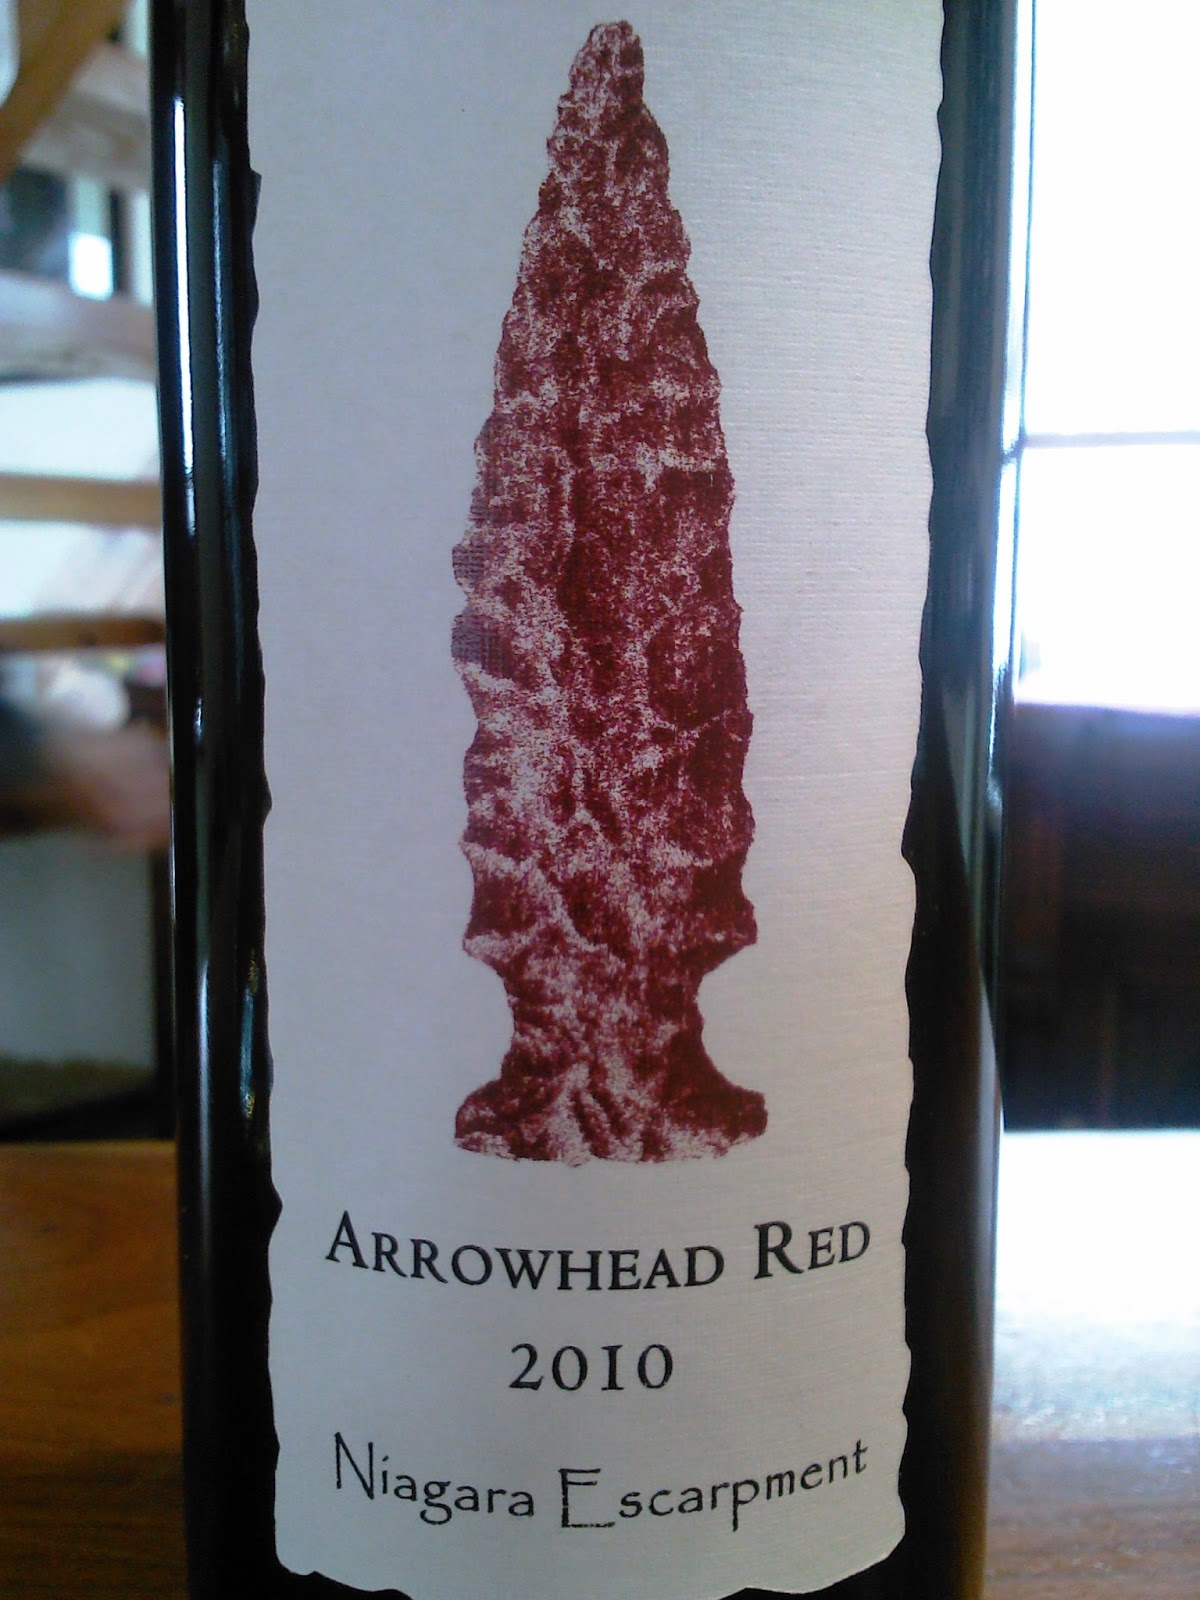 Red 1 Parking Arrowhead East Coast Wineries Arrowhead Springs Winery – It's All